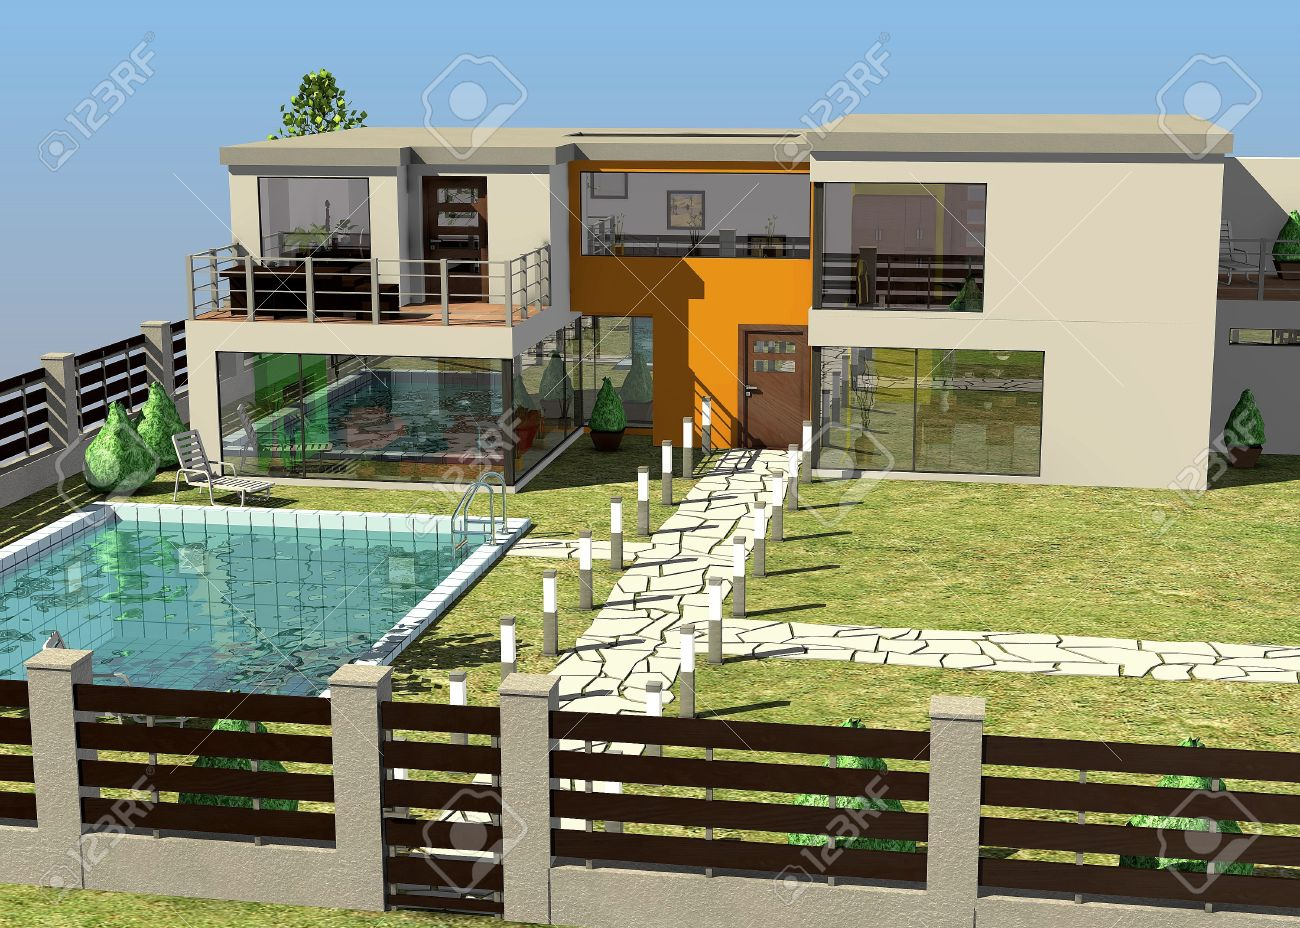 Architecture maison l 39 impression 3d for Architecture des villas modernes